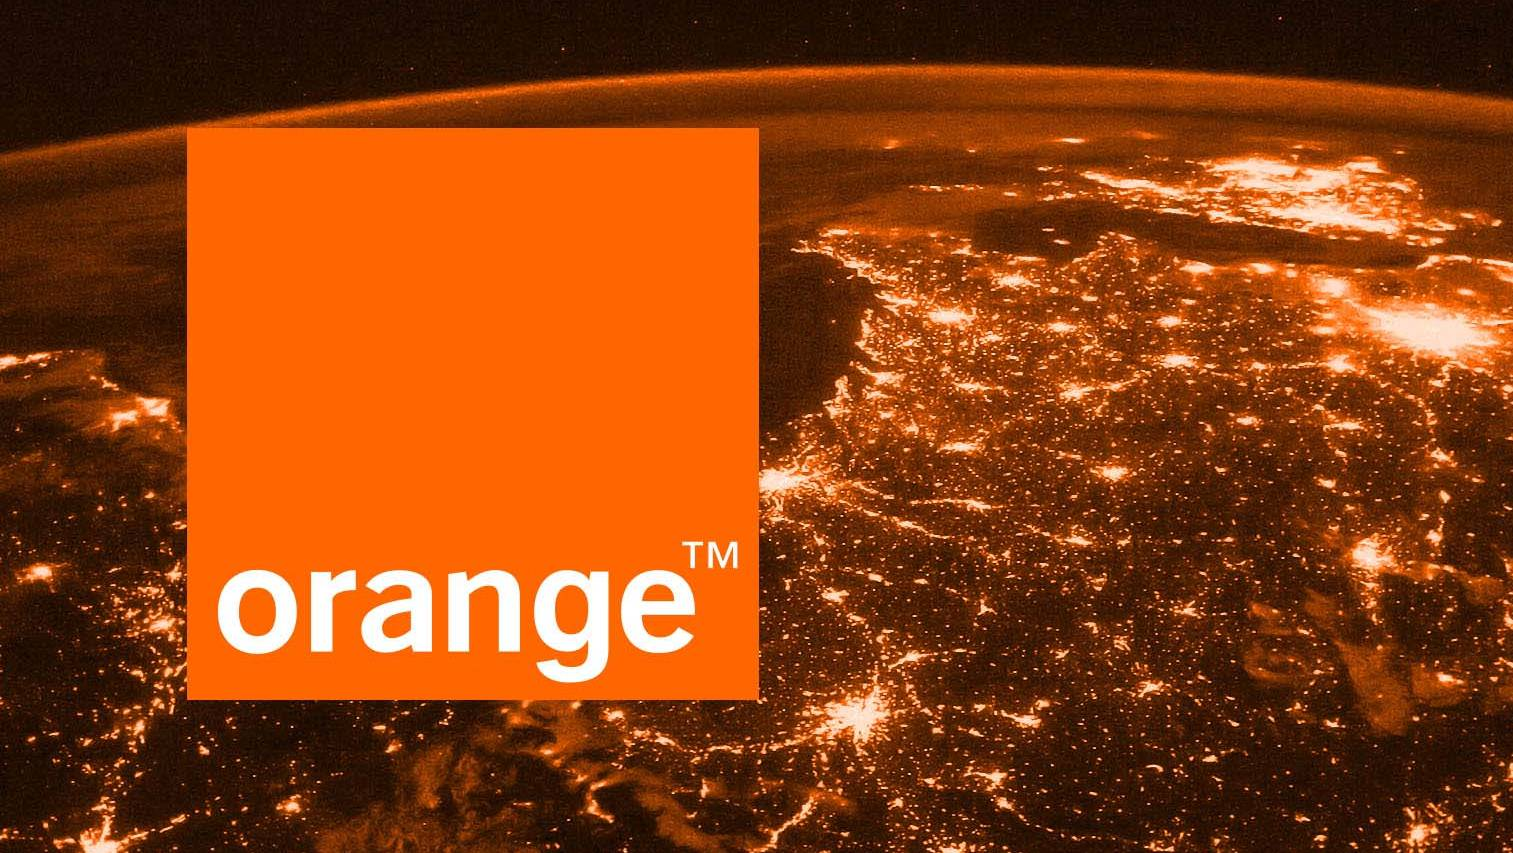 Orange are Promotii EXCELENTE la Telefoane de care sa PROFITI